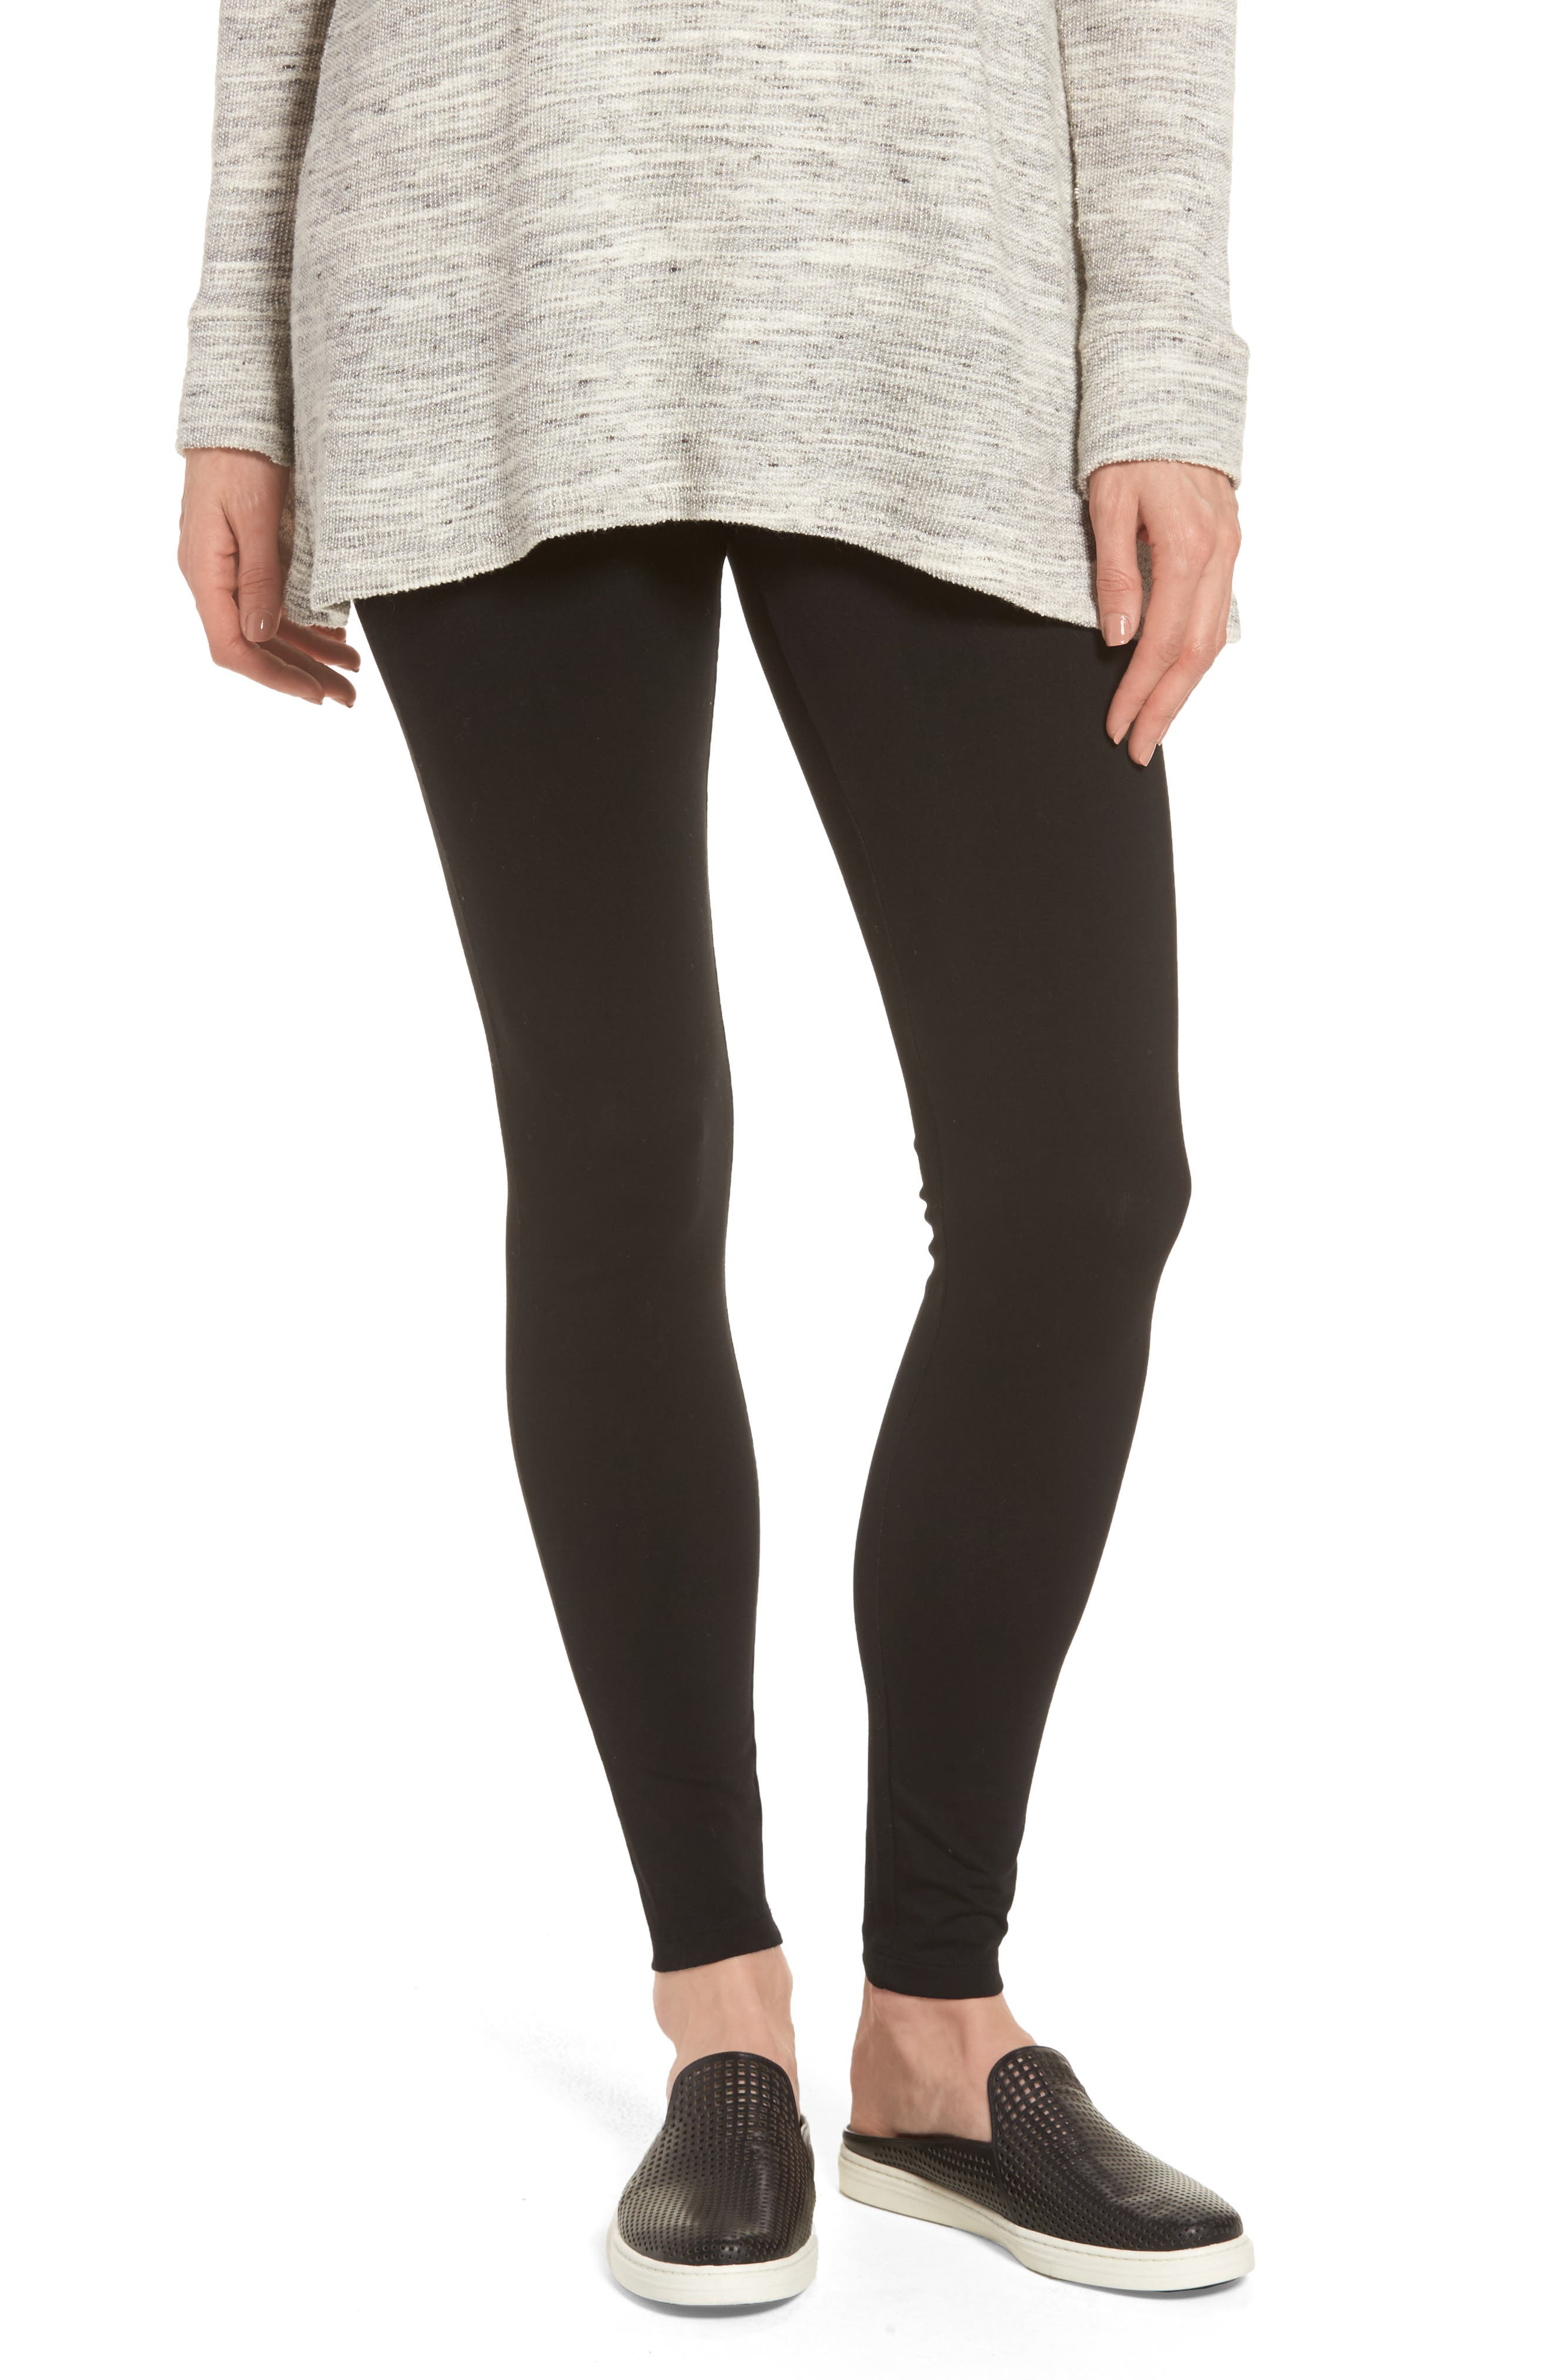 Alternate Image 1 Selected - Caslon® High Waist Leggings (Regular & Petite)